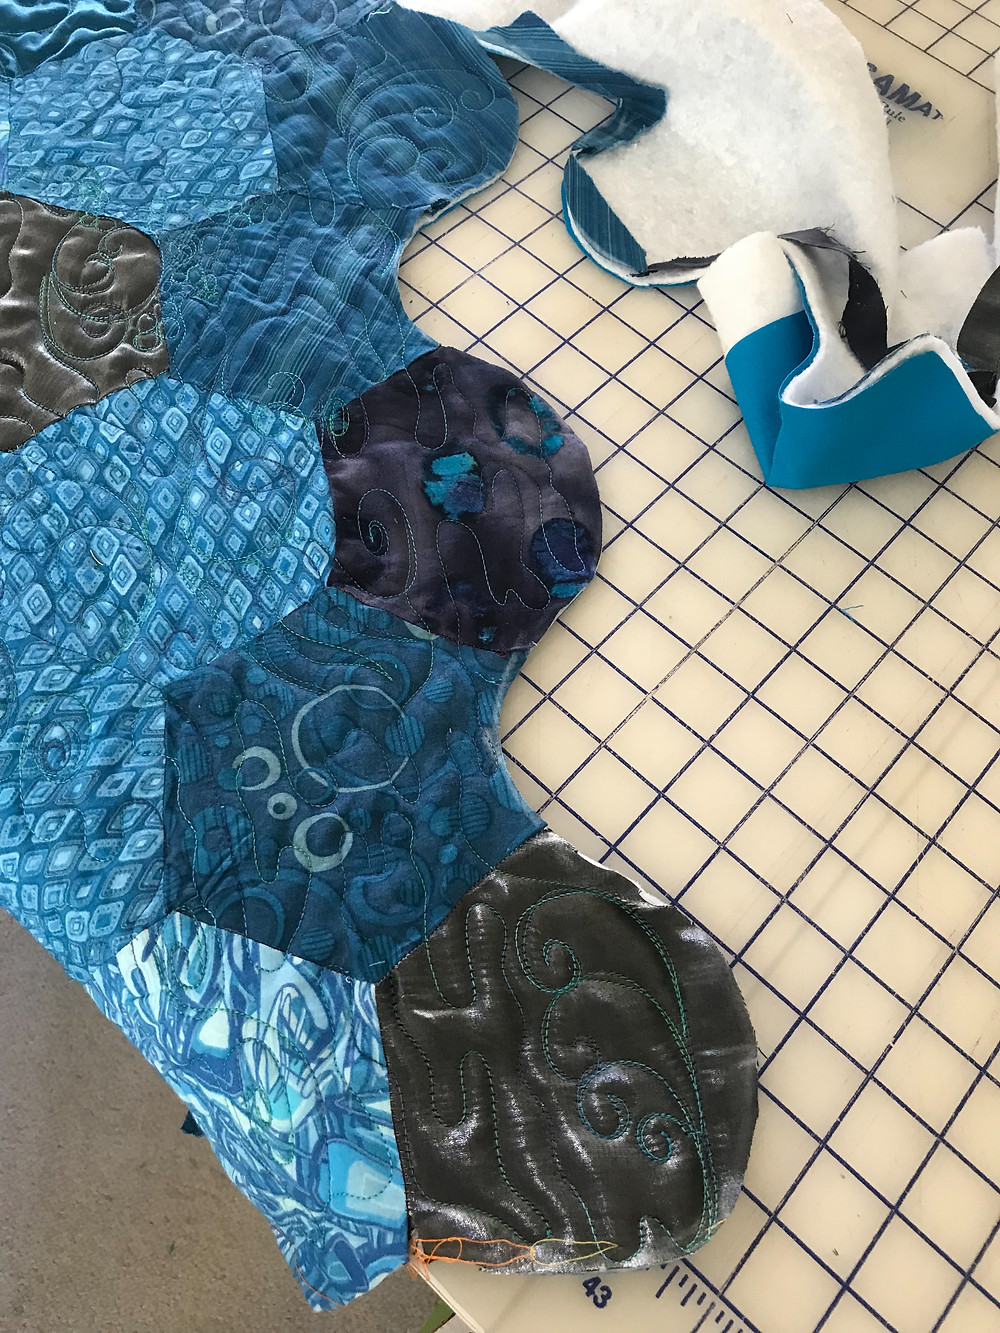 Cutting Border of Koi Pond Machine Quilted by Sally Terry